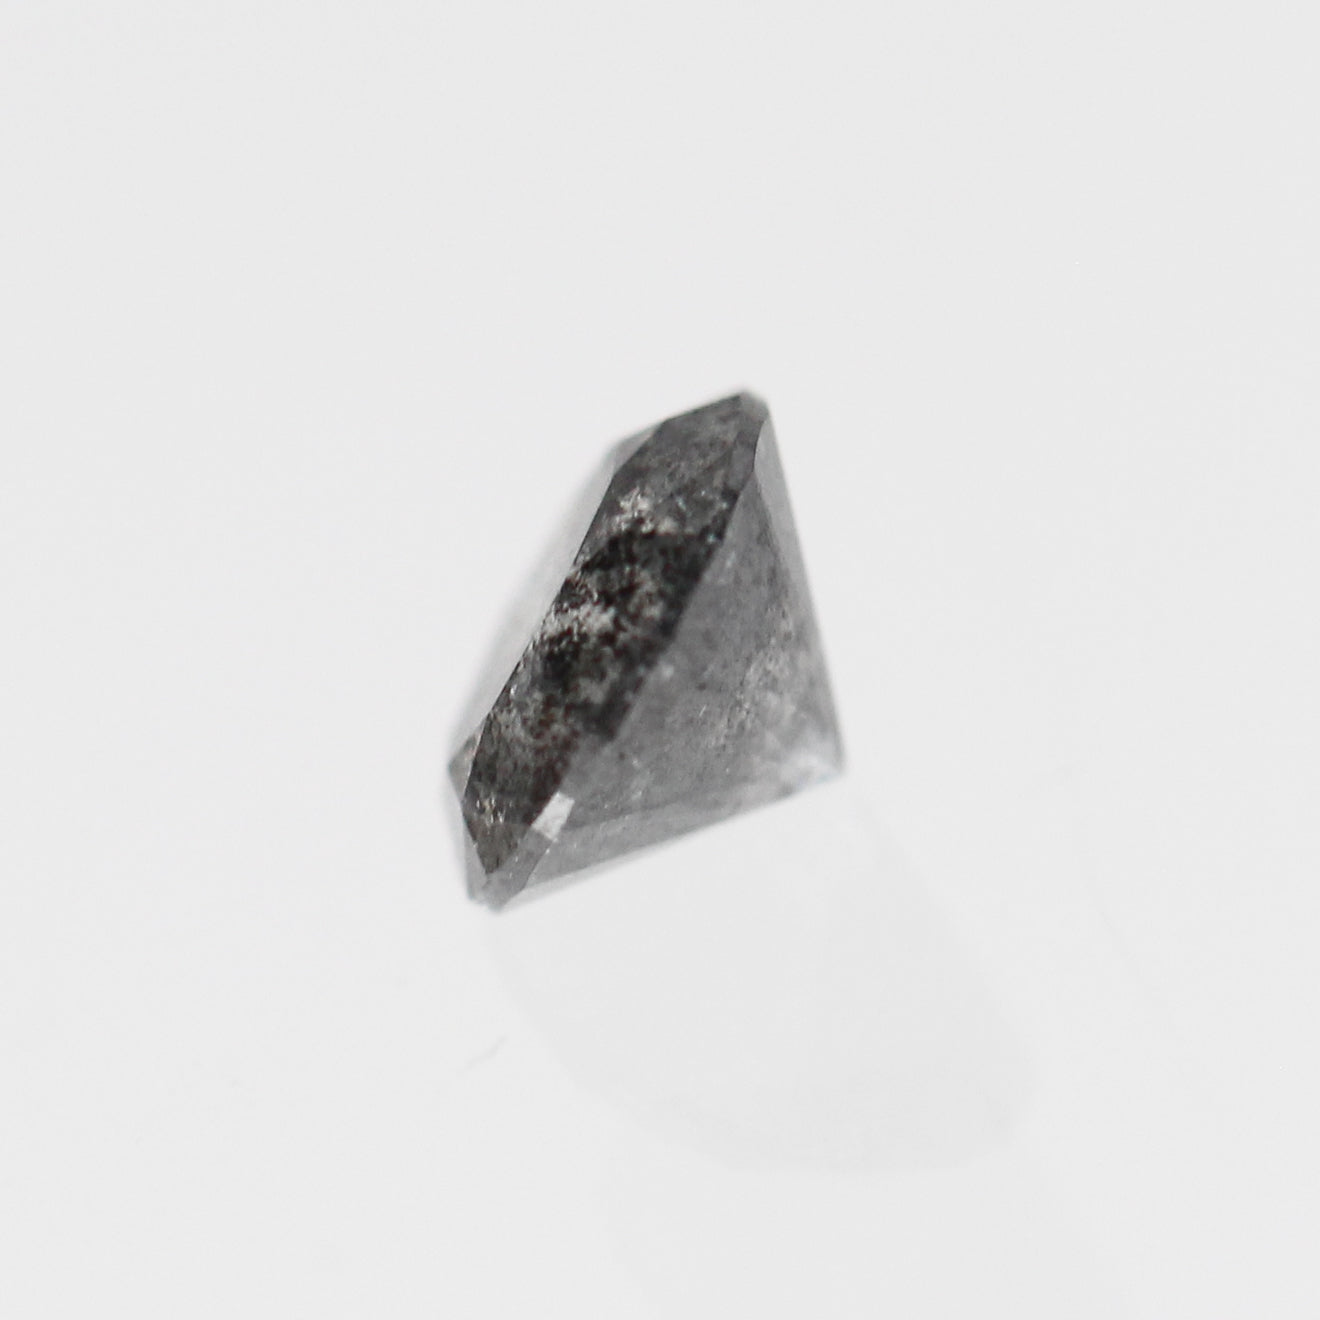 .64 Carat Celestial Diamond for Custom Work - Inventory Code RBB64 - Celestial Diamonds ® by Midwinter Co.